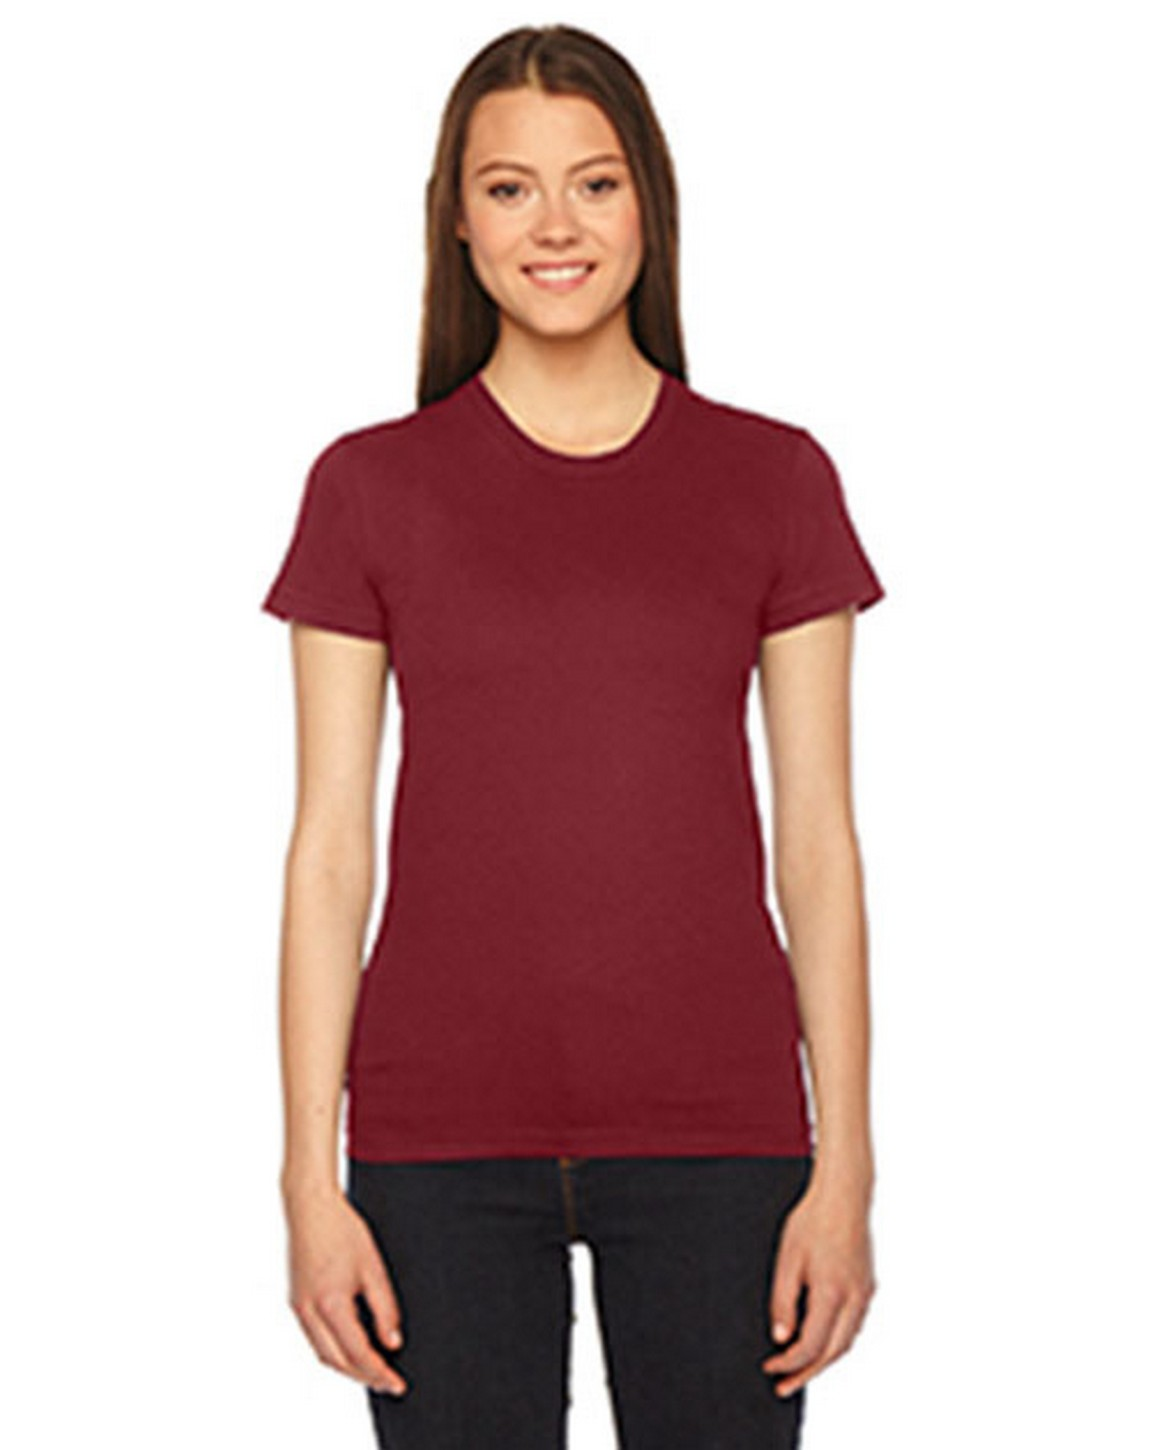 American Apparel 2102W Ladies Fine Jersey Short-Sleeve T-Shirt